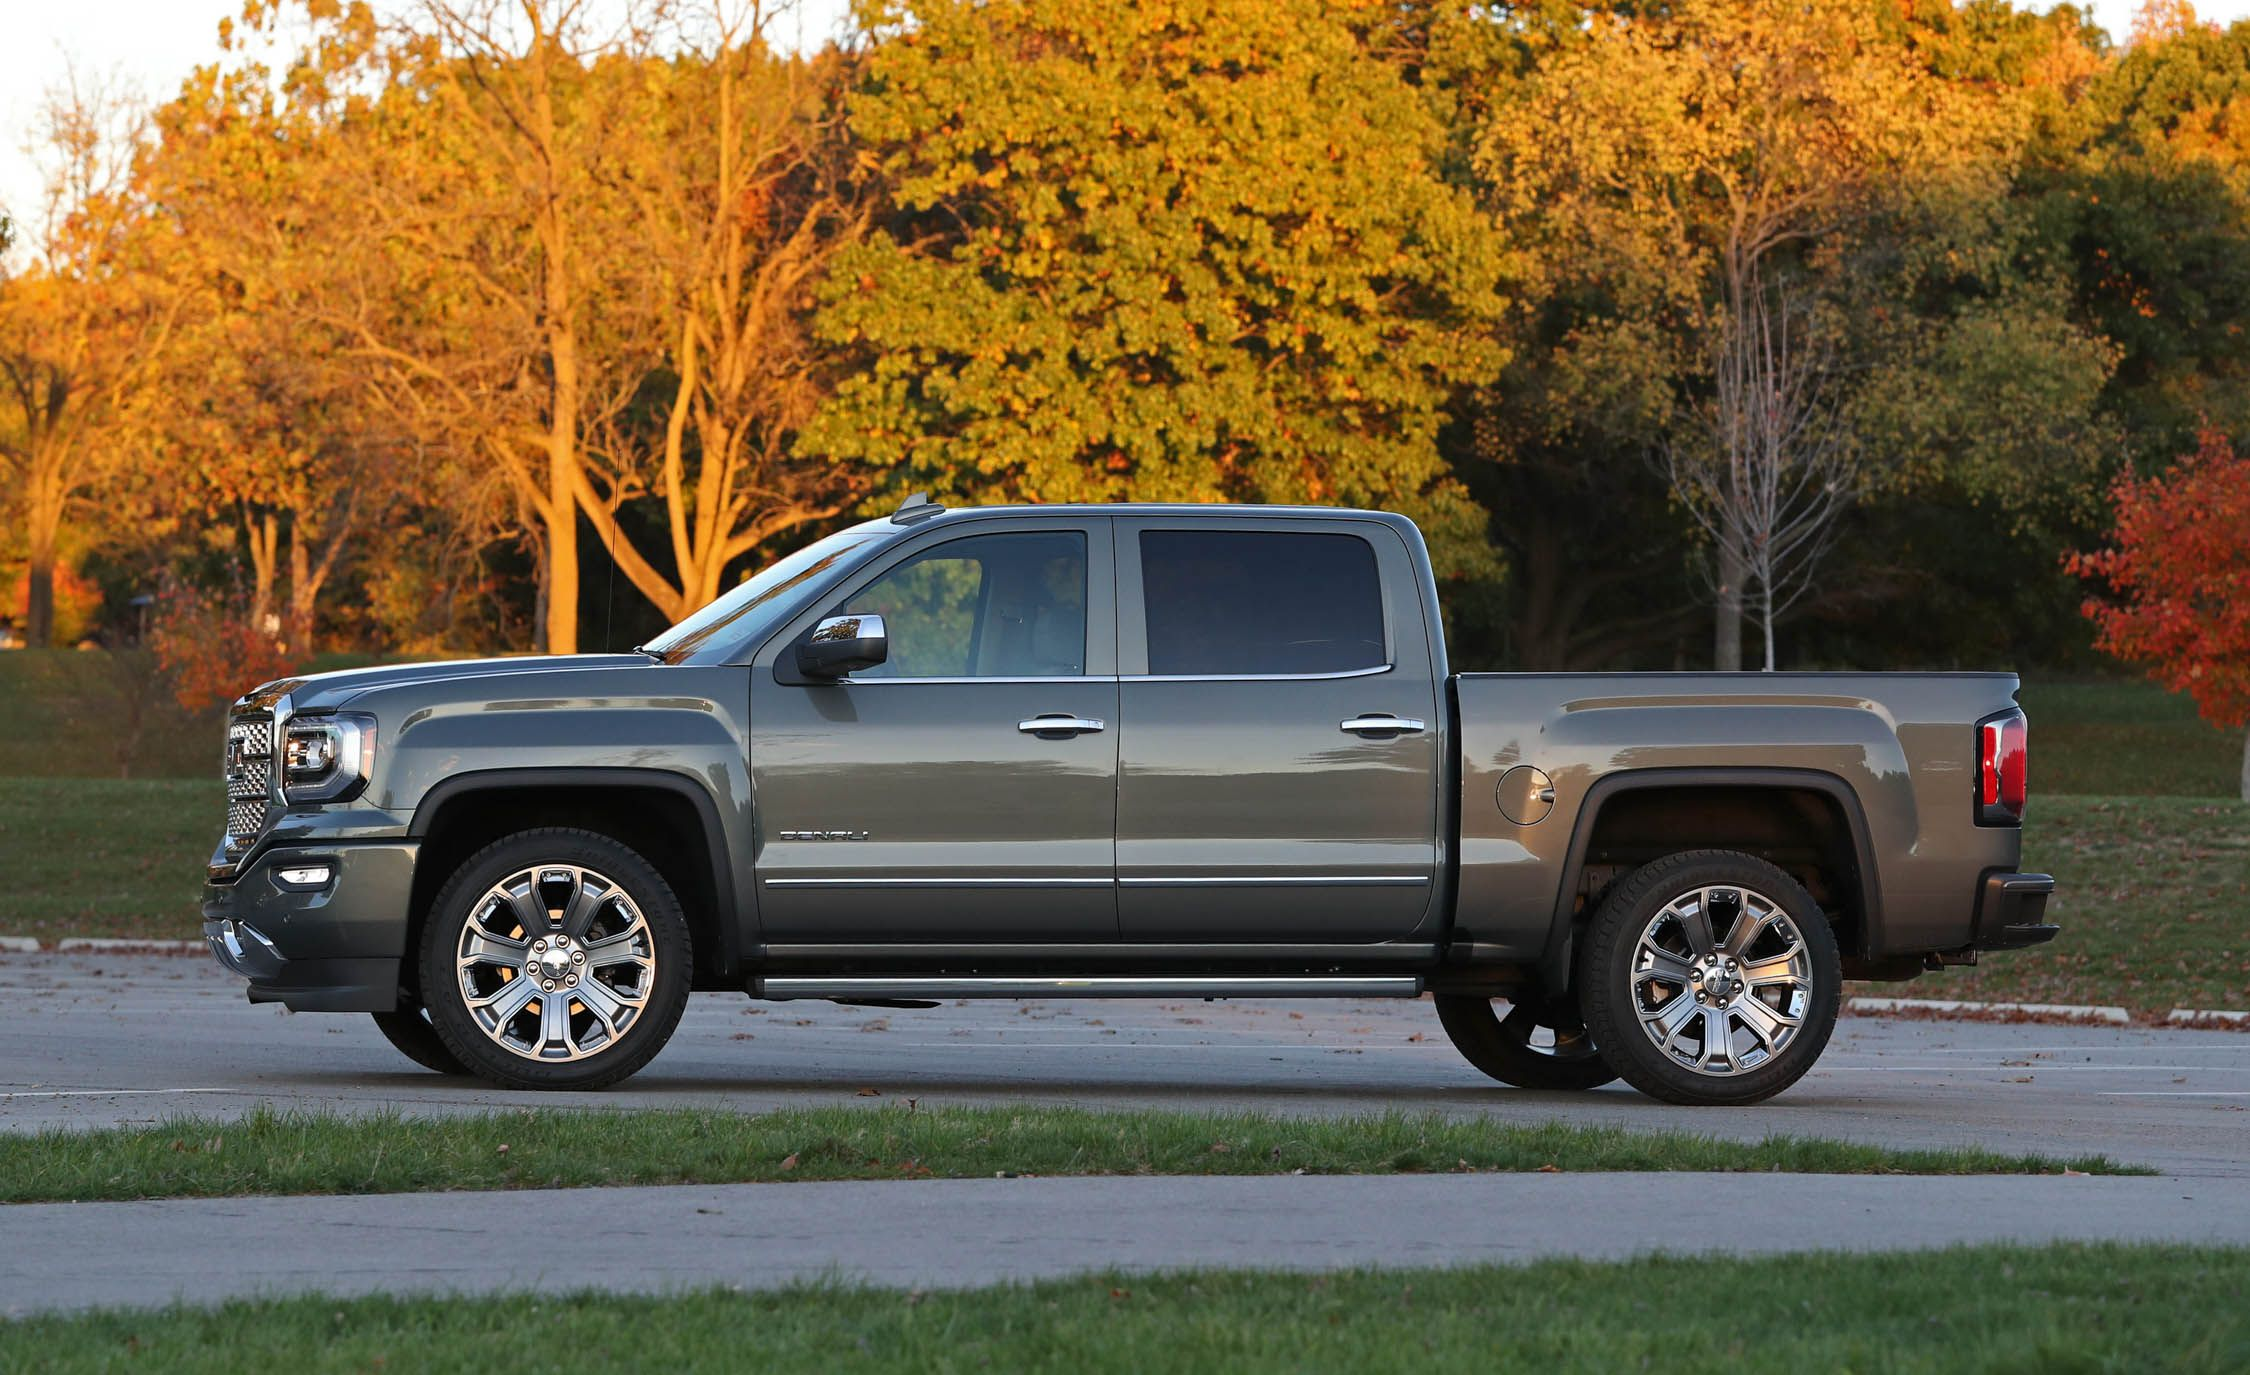 2018 GMC Sierra 1500 Interior Review